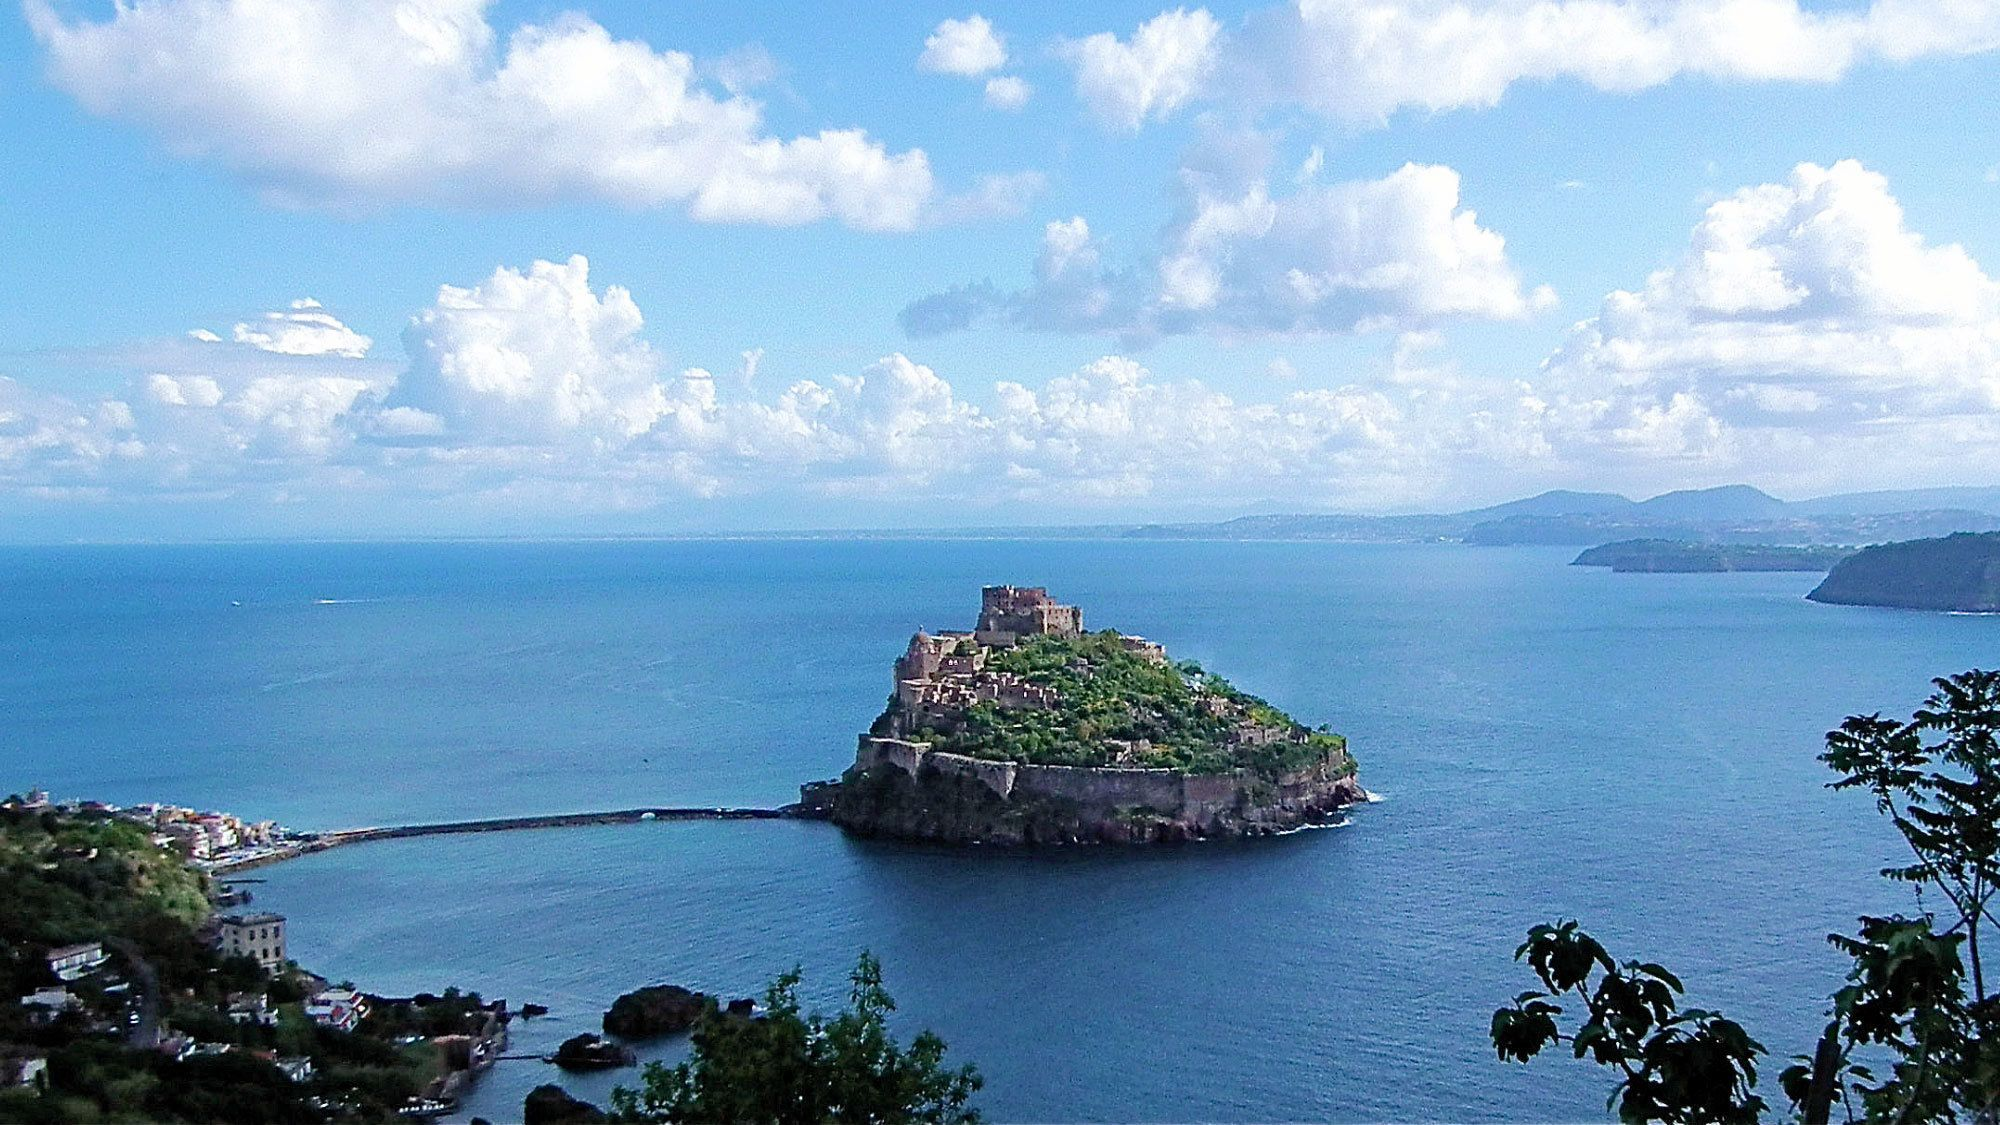 Aragonese Castle on a volcanic rock off the coast of Ischia